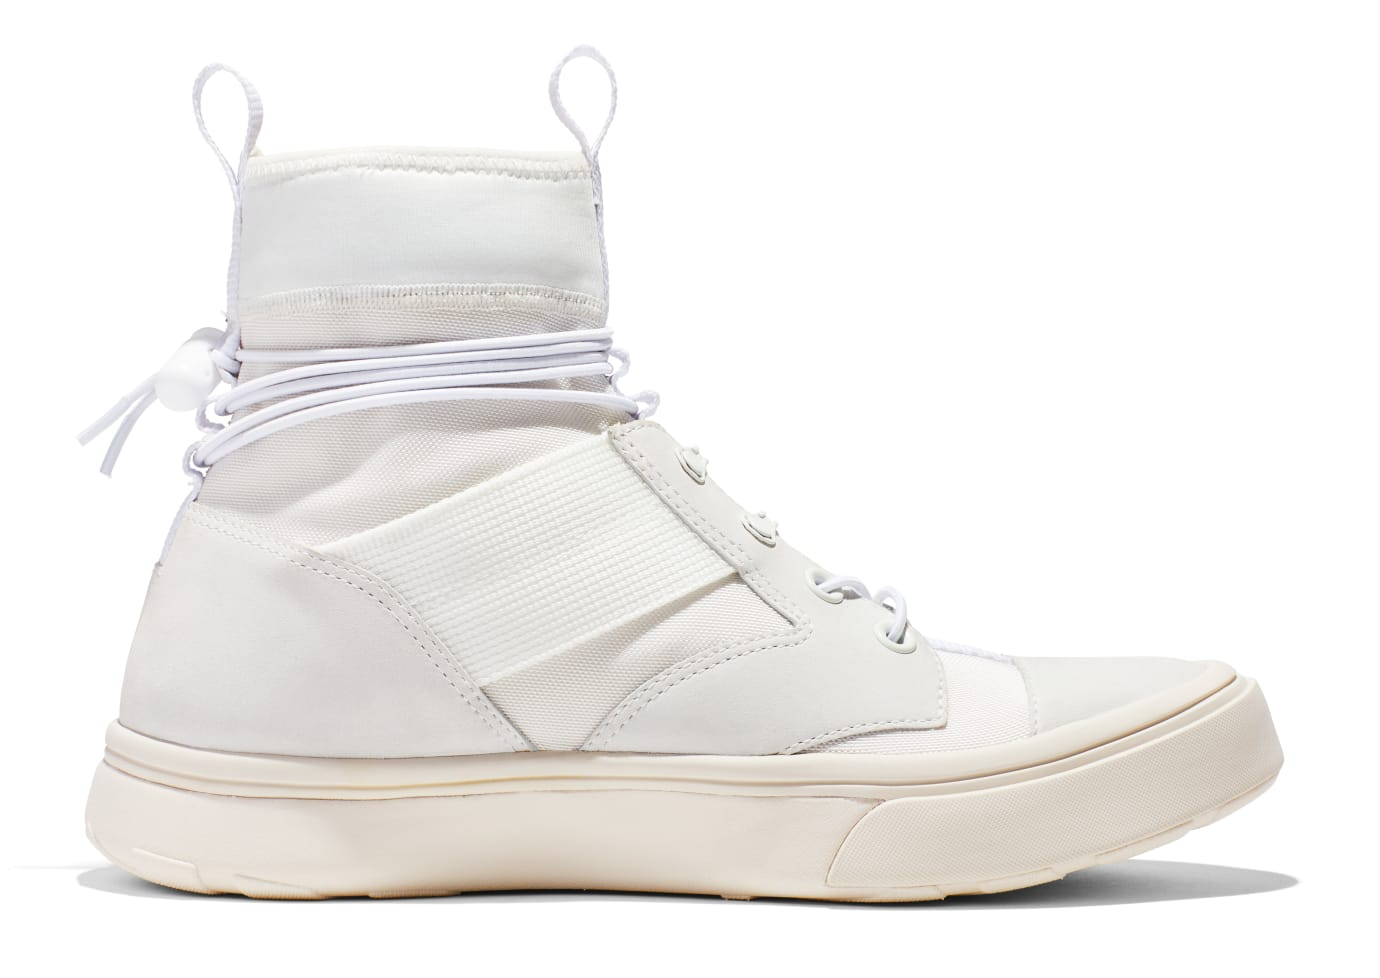 Converse Urban Utility Jump Boot 'White' (Lateral)